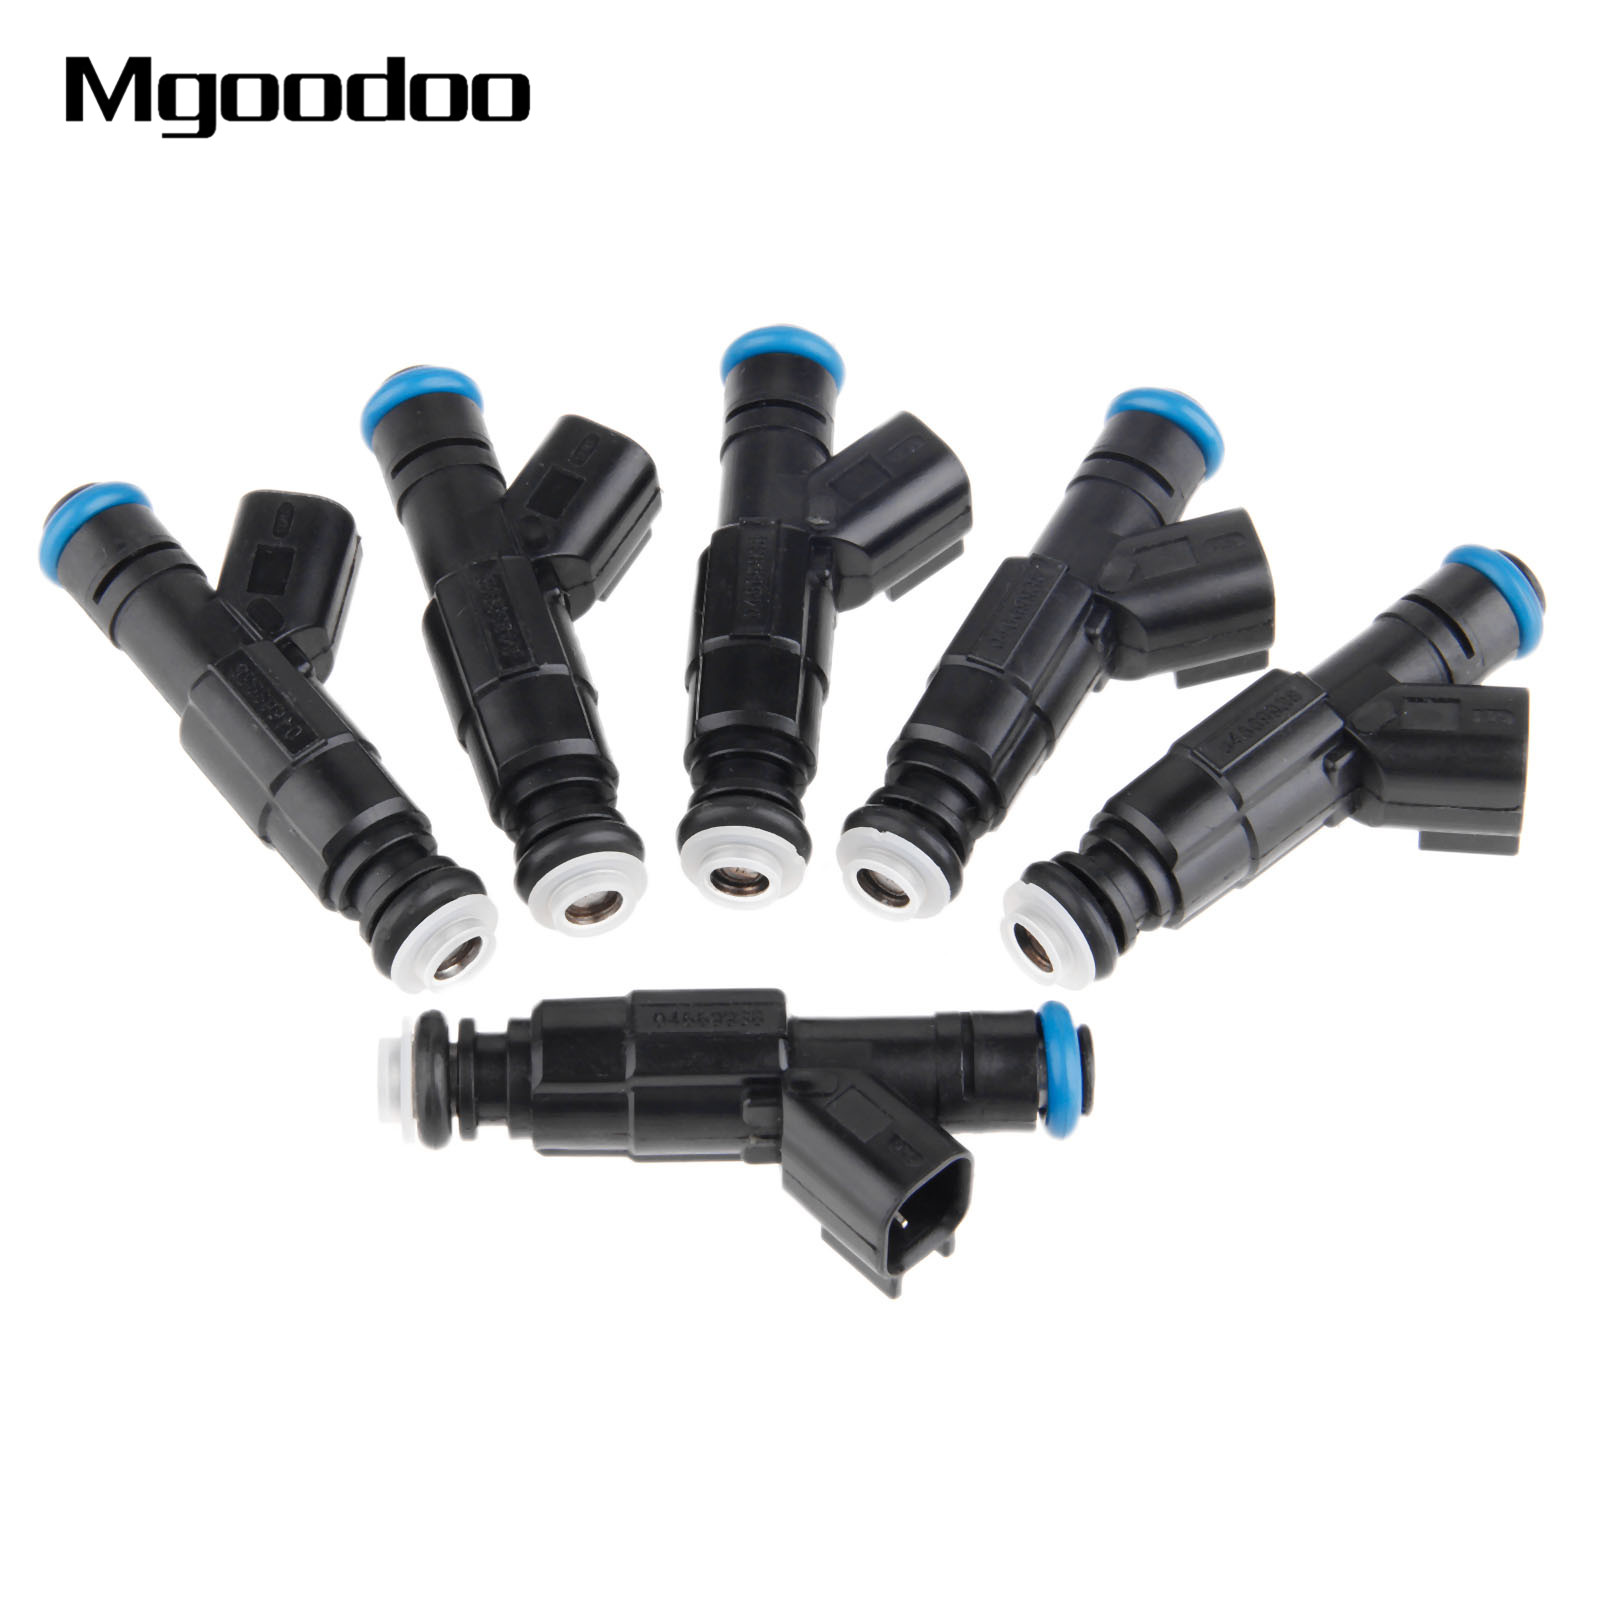 US $44 98 20% OFF|6Pcs 4 Hole EV6 Upgrade Fuel Injectors Kit 0280155784 For  Jeep Cherokee 99 01 4 0L / Grand Cherokee 99 04 / Wrangler 99 04 4 0L-in